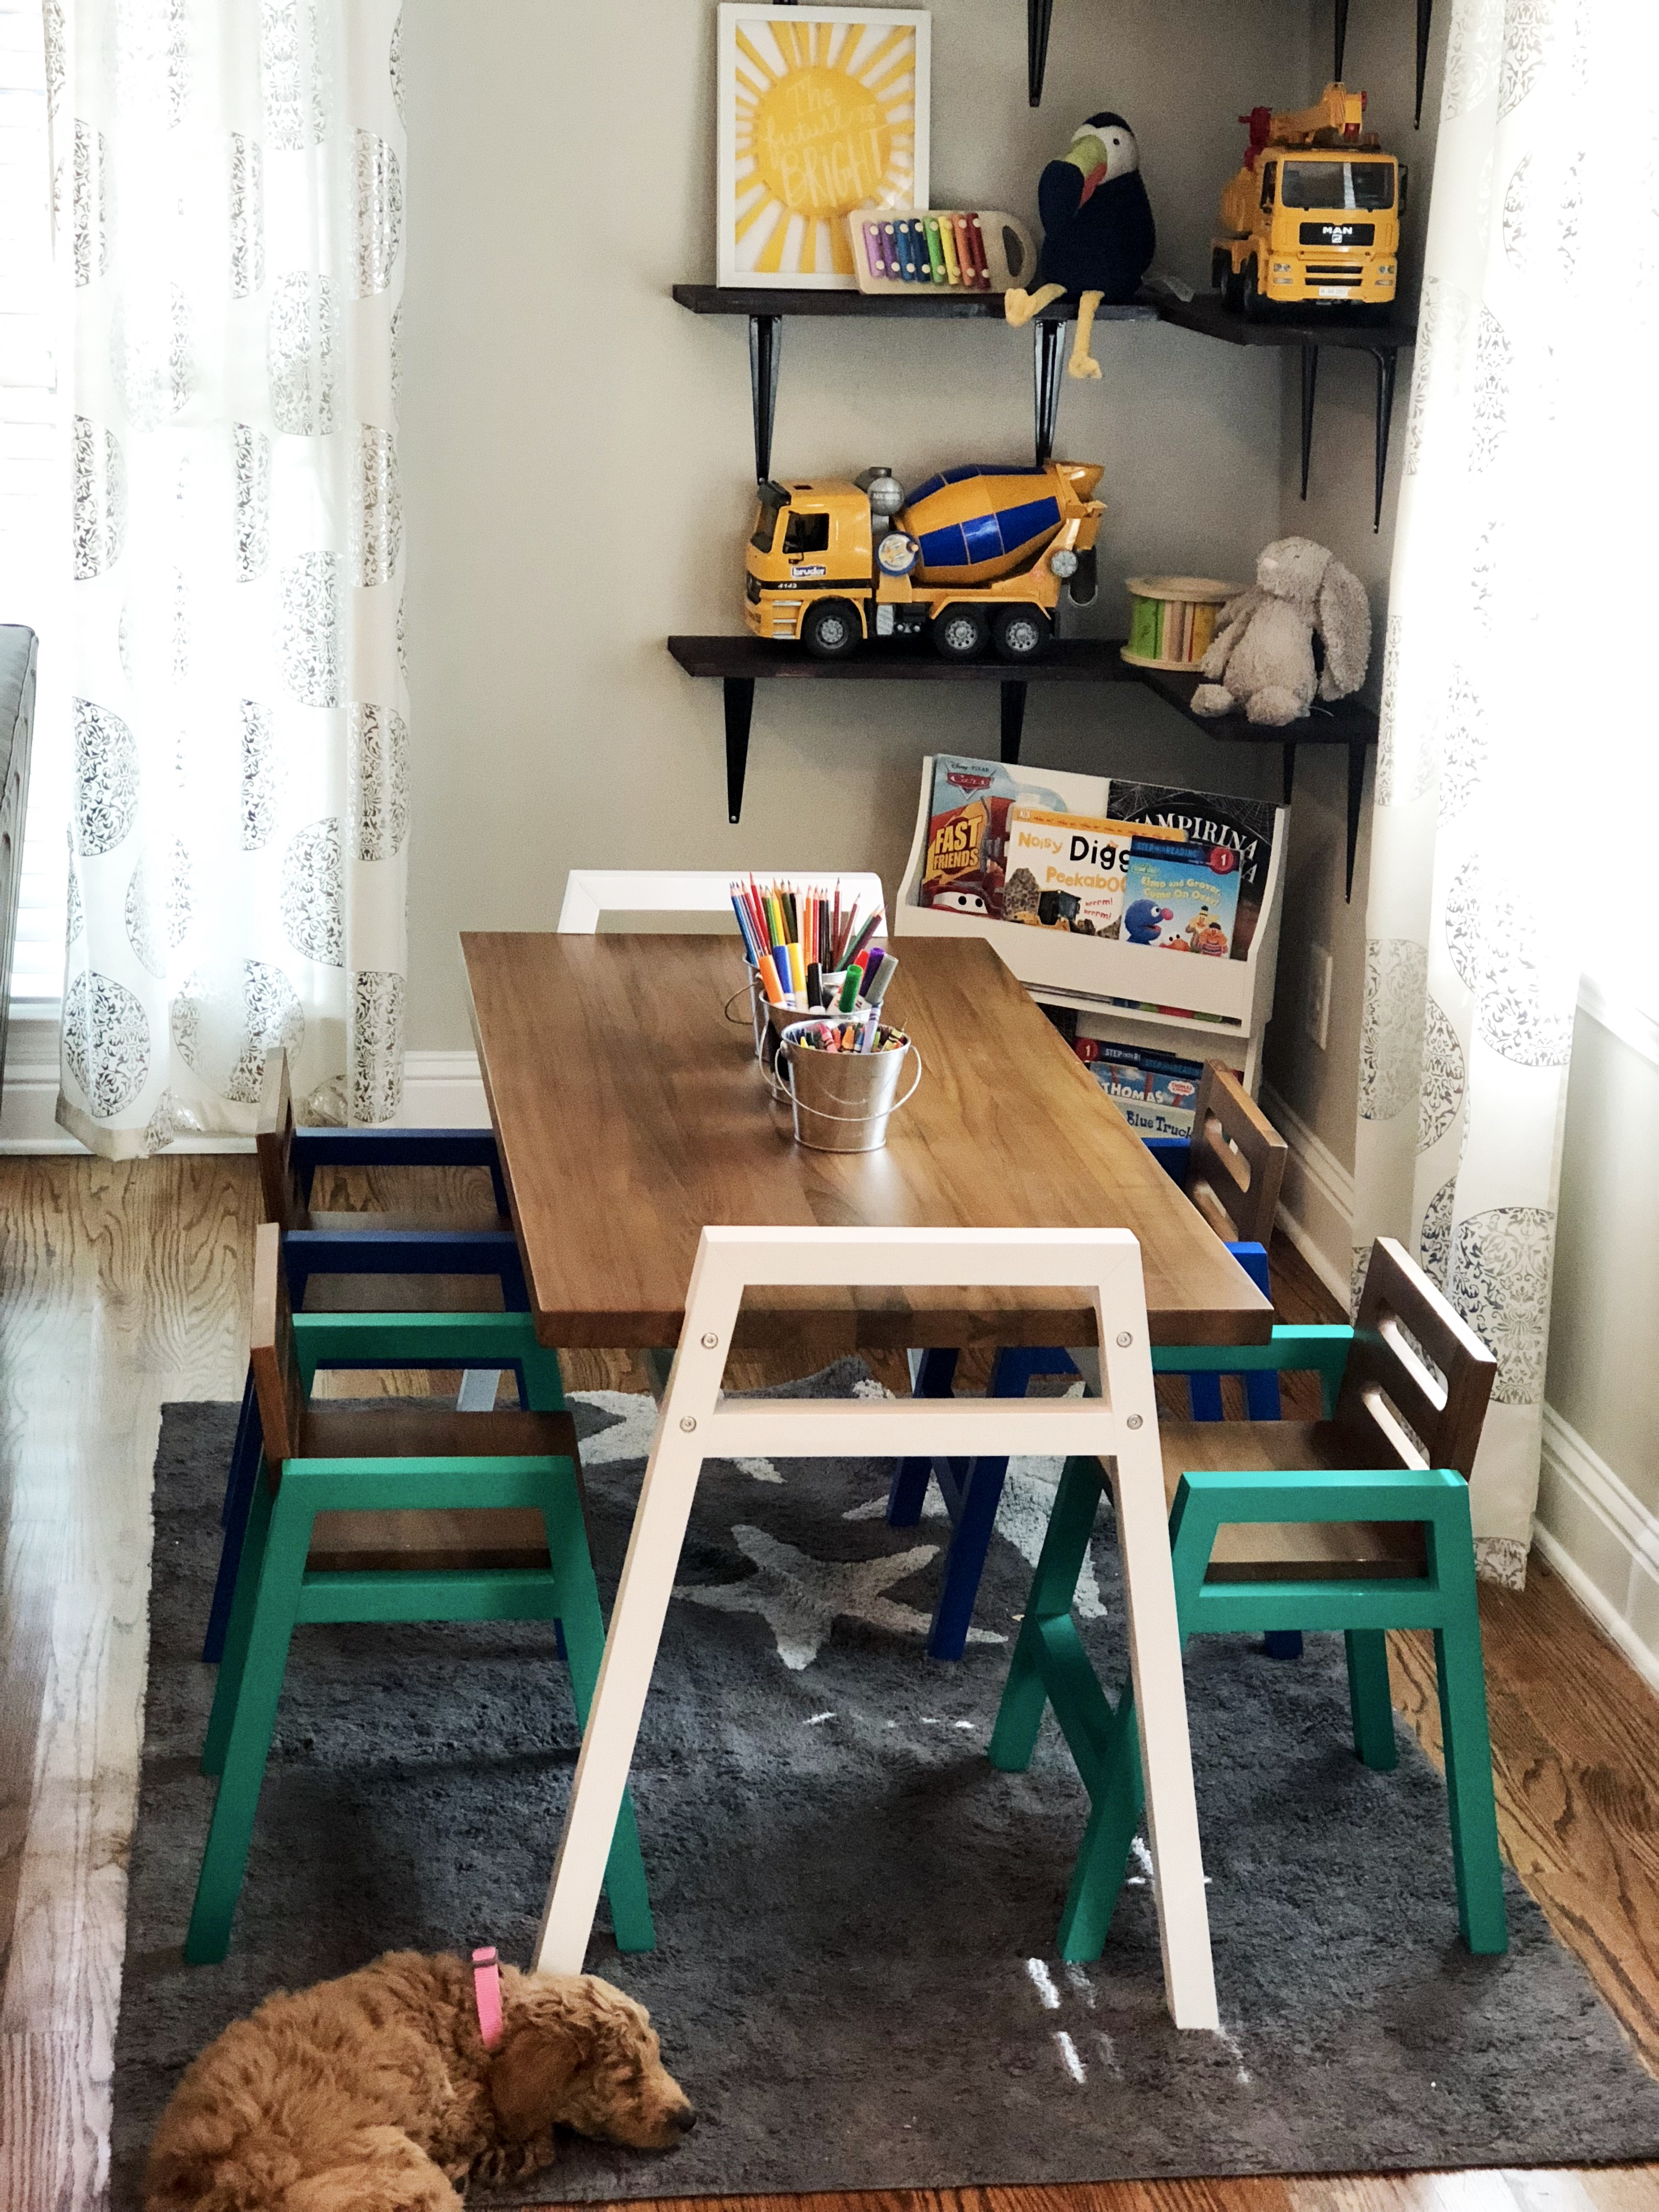 kids nook land of nod - Home Renovations We're Working on Now by Atlanta lifestyle blogger Happily Hughes